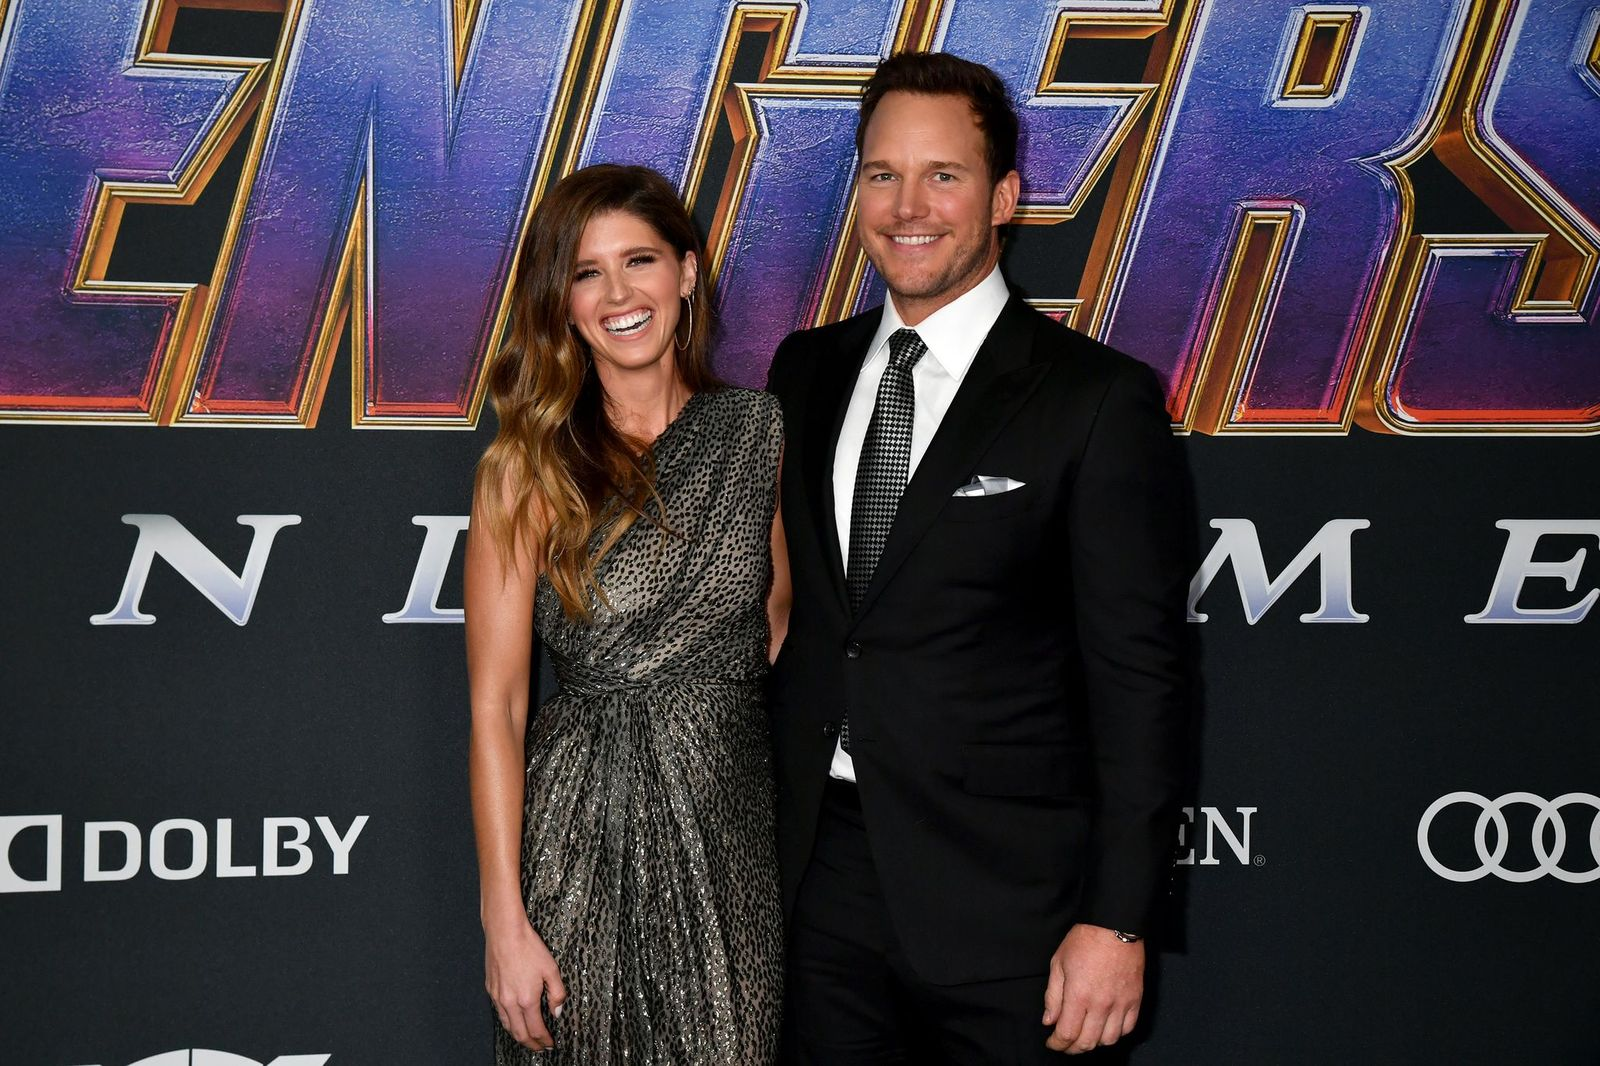 """Katherine Schwarzenegger and Chris Pratt at the World Premiere of Walt Disney Studios Motion Pictures """"Avengers: Endgame"""" at Los Angeles Convention Center on April 22, 2019 